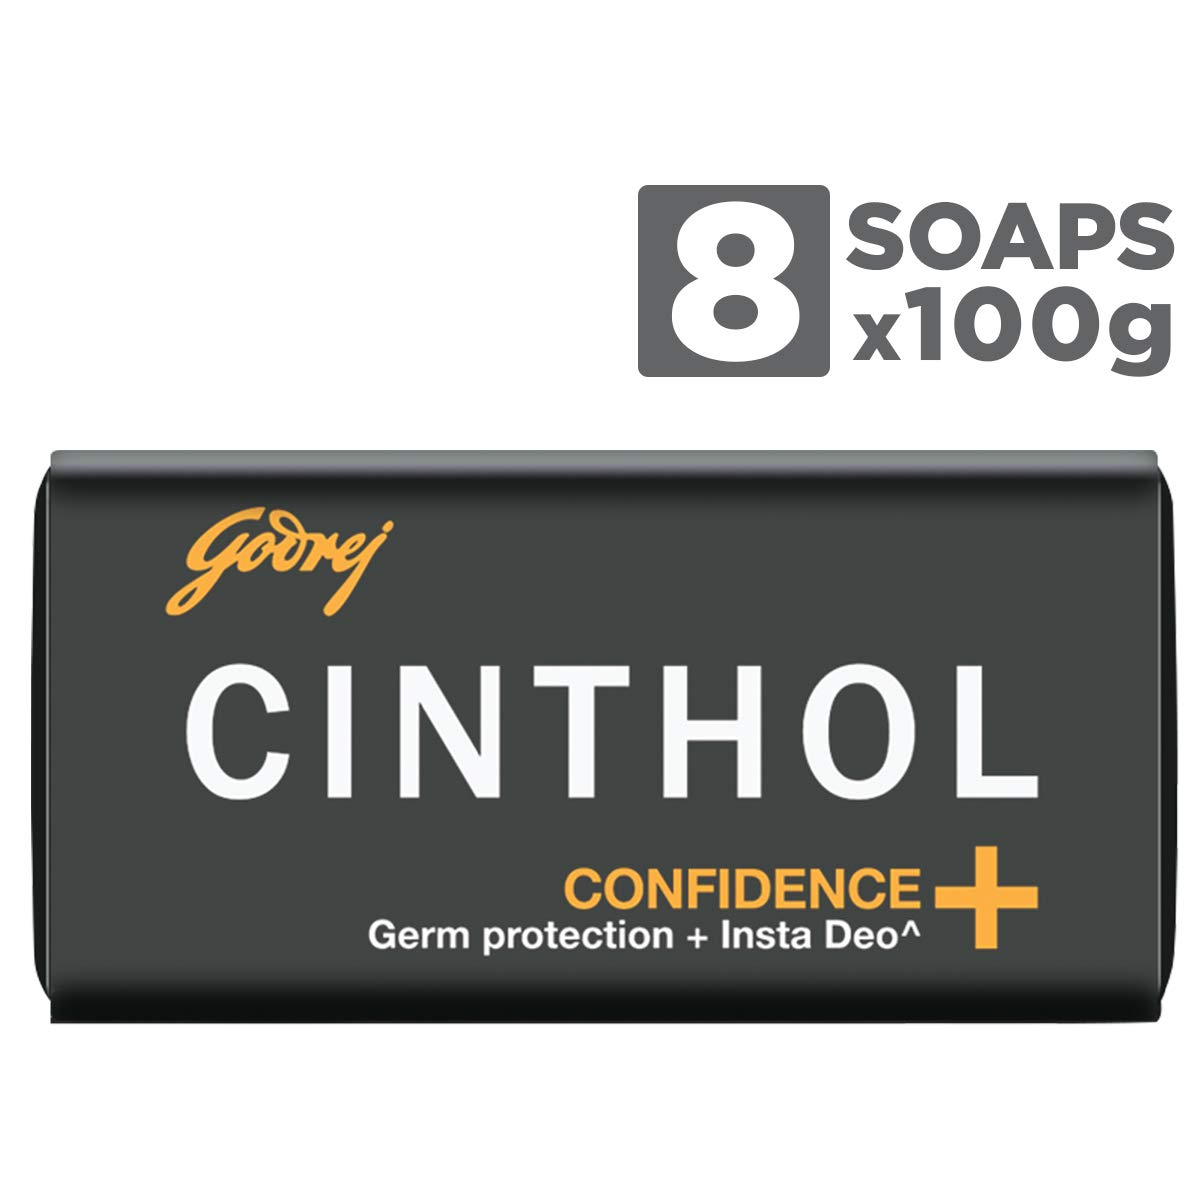 Cinthol Confidence+ Bath Soap – 99.9% Germ Protection, 100g (Pack of 8)